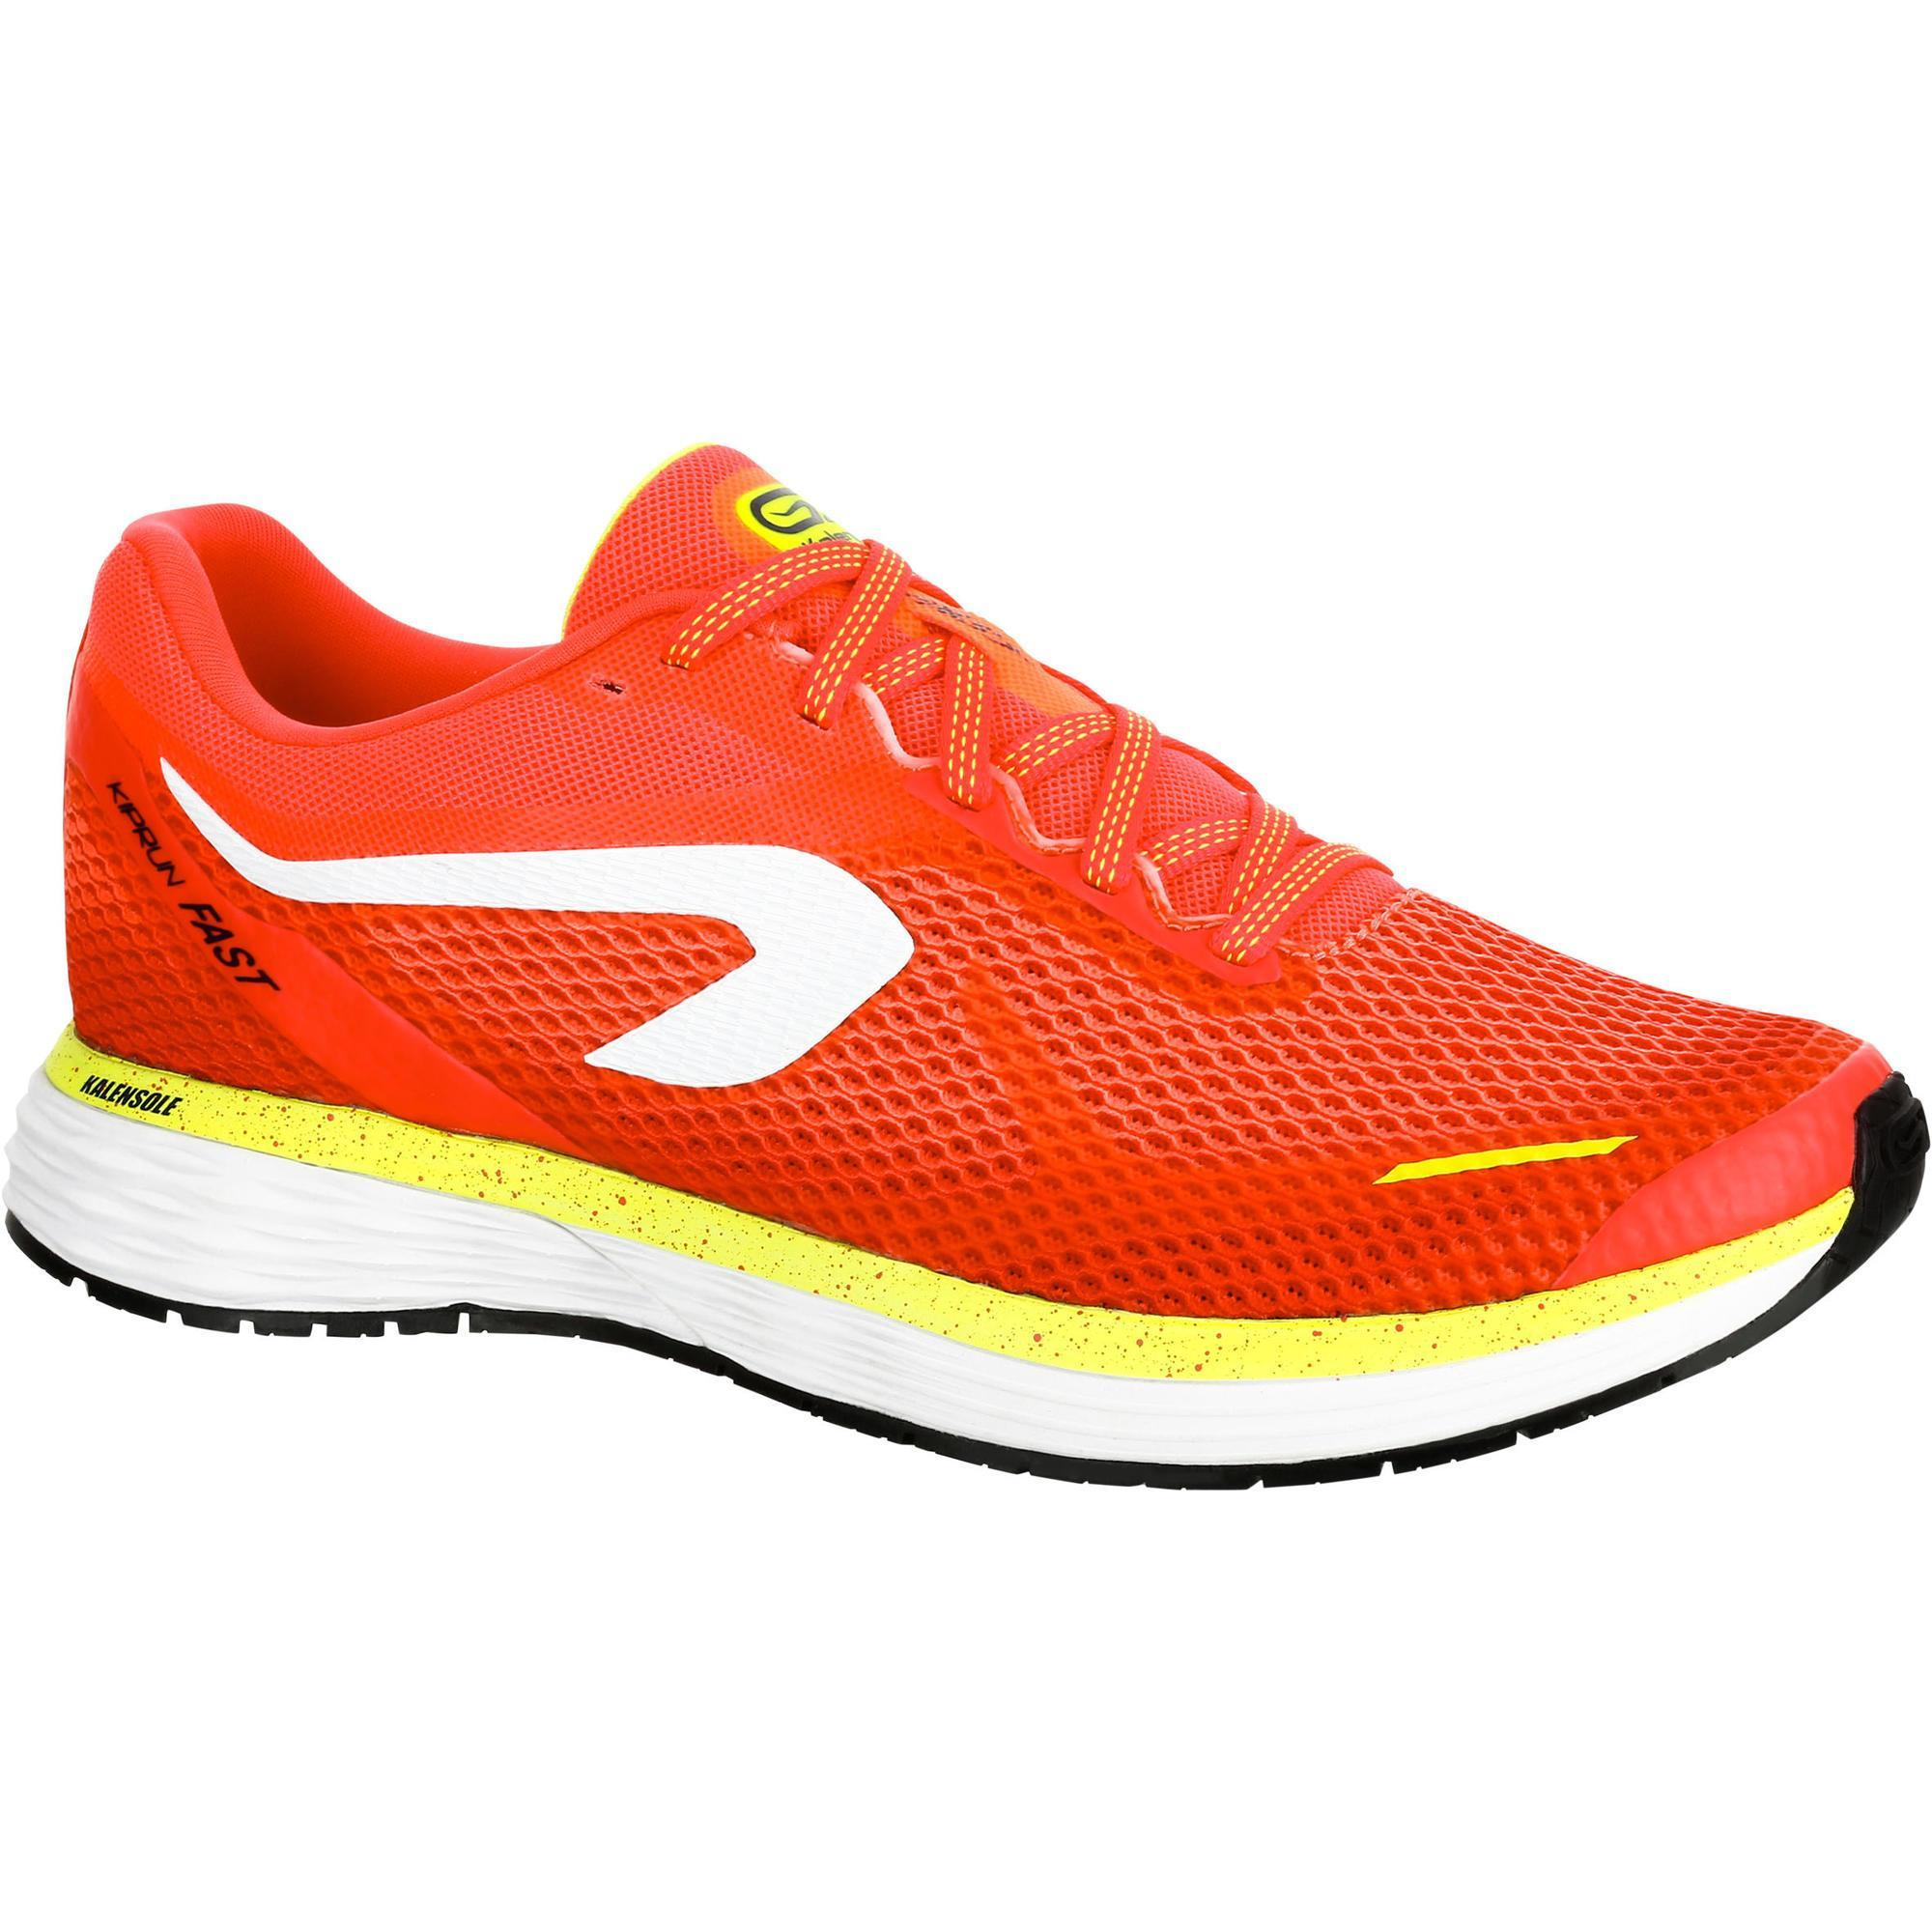 new product 773c5 4c971 Femmes Femmes Chaussures Running Decathlon Decathlon Chaussures Chaussures  Running OxdFYwqSF